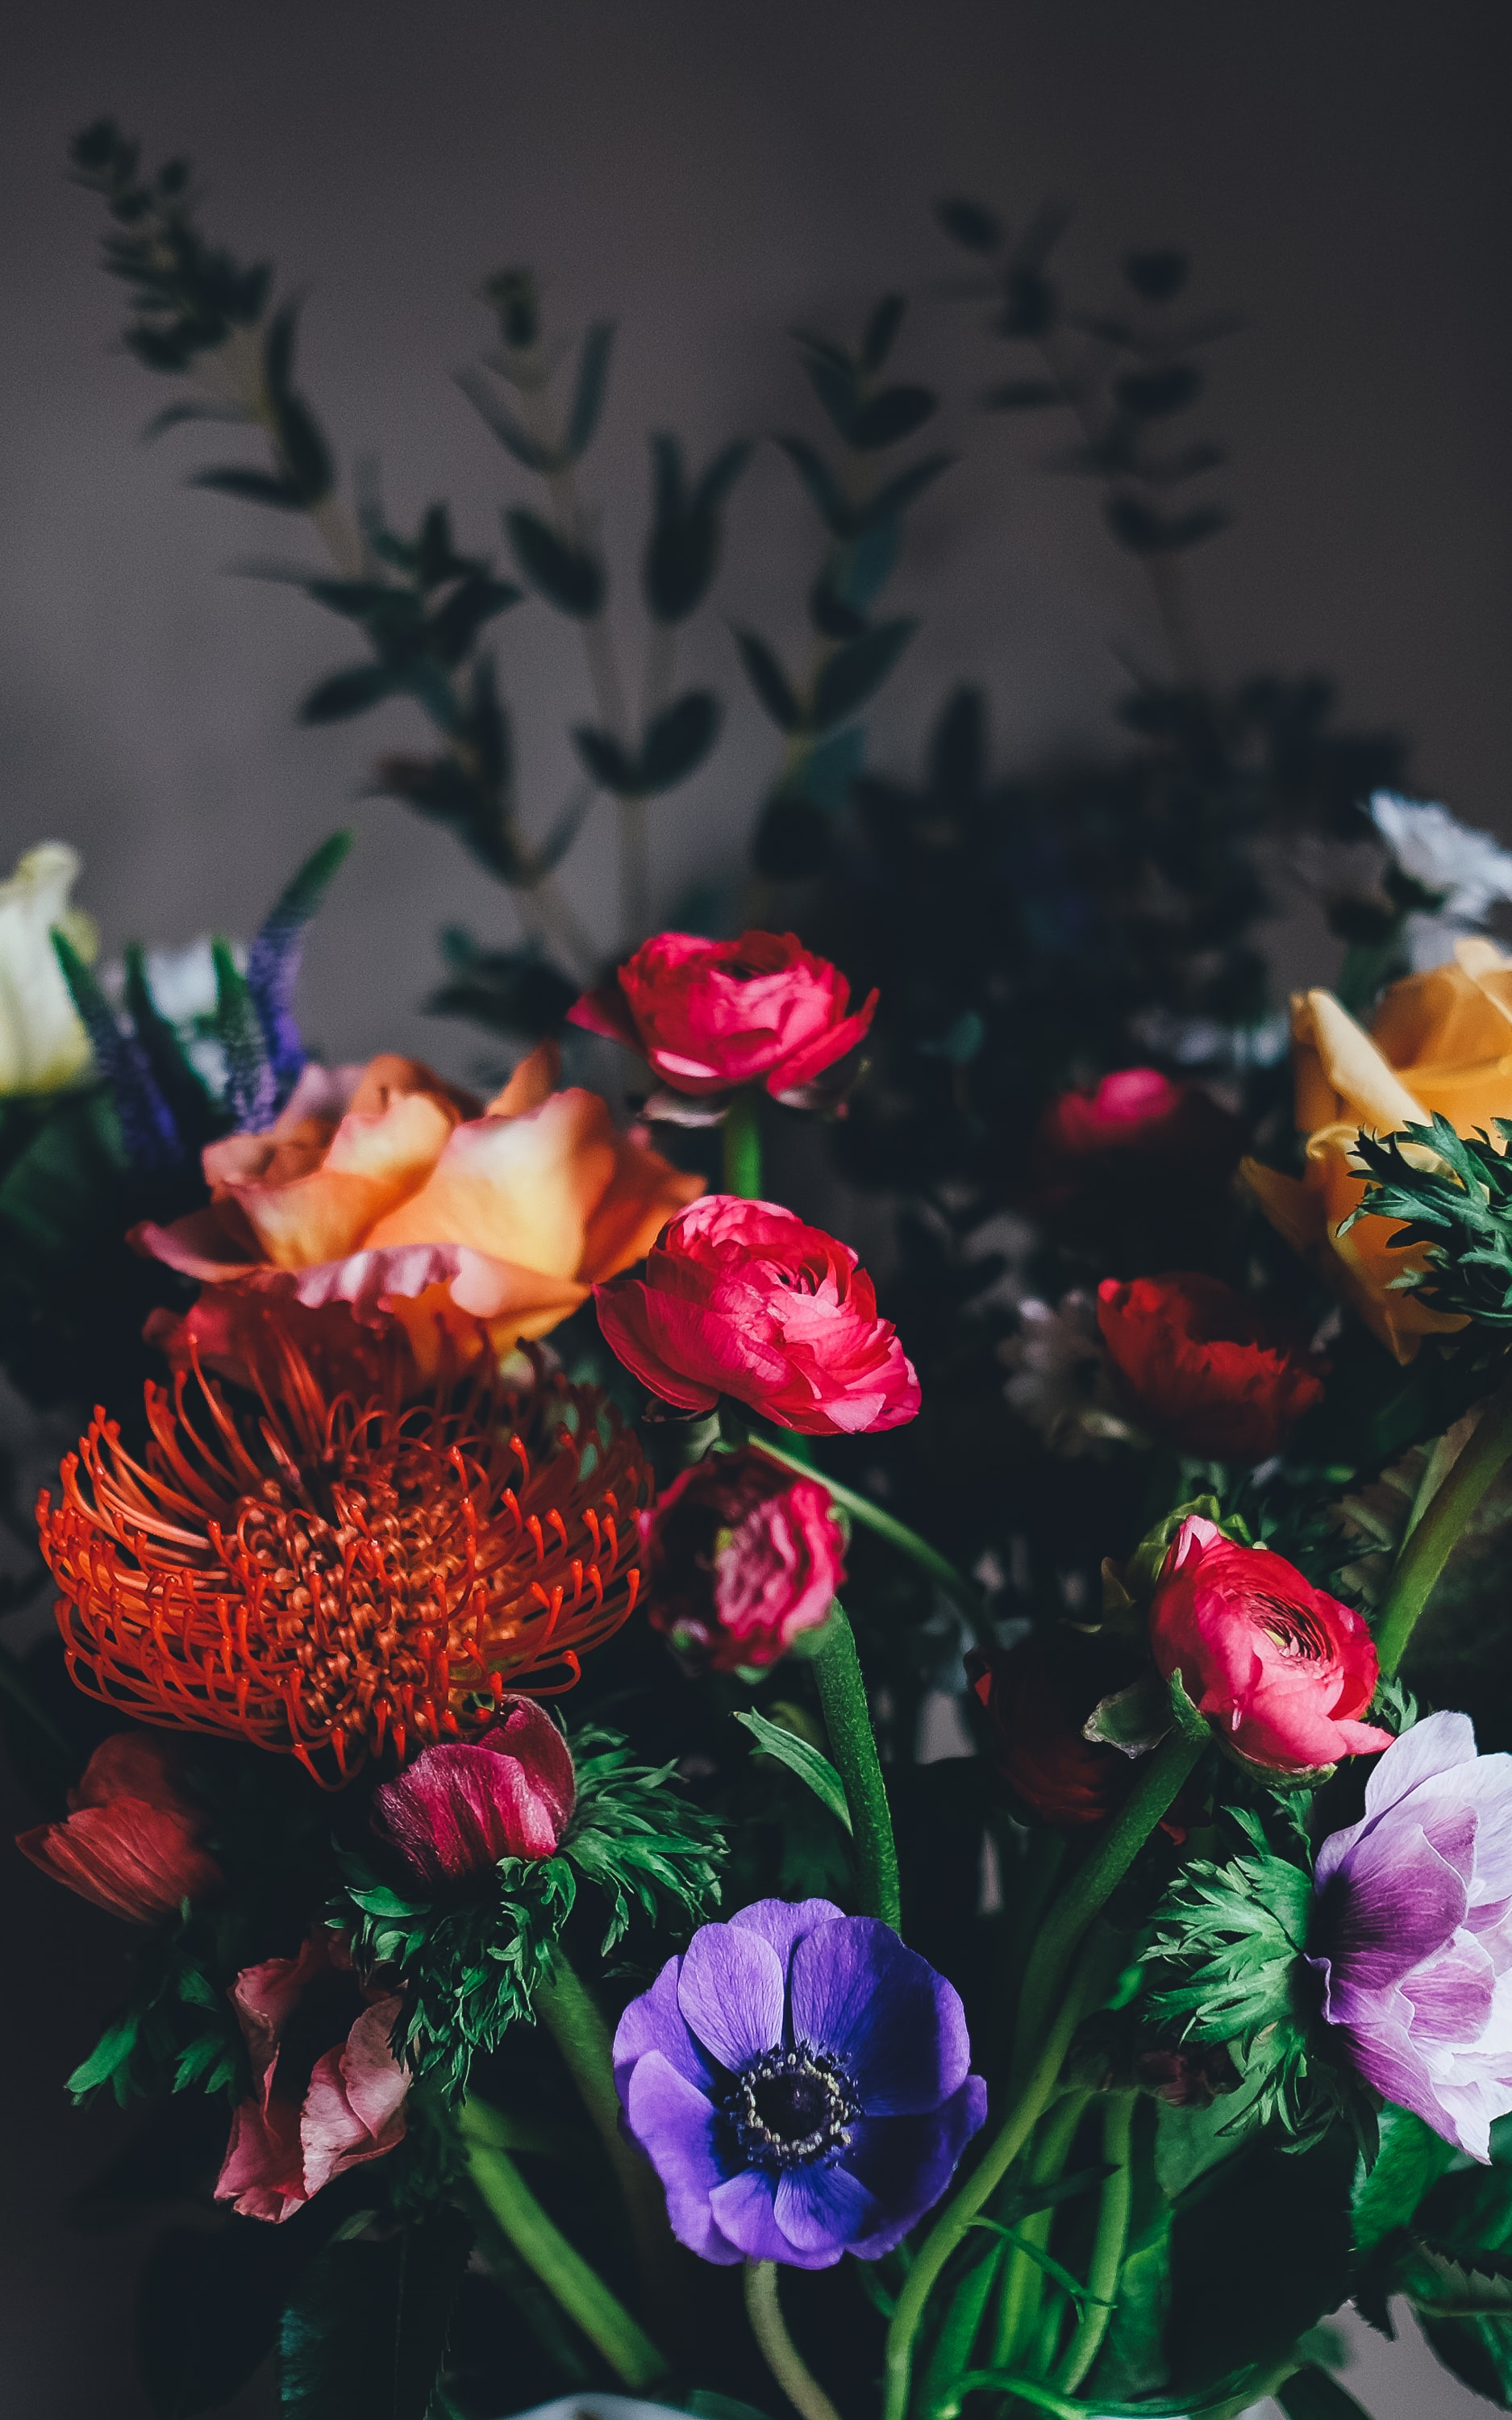 A Collection Of Magnificent Flowers Of Various Colors And Types